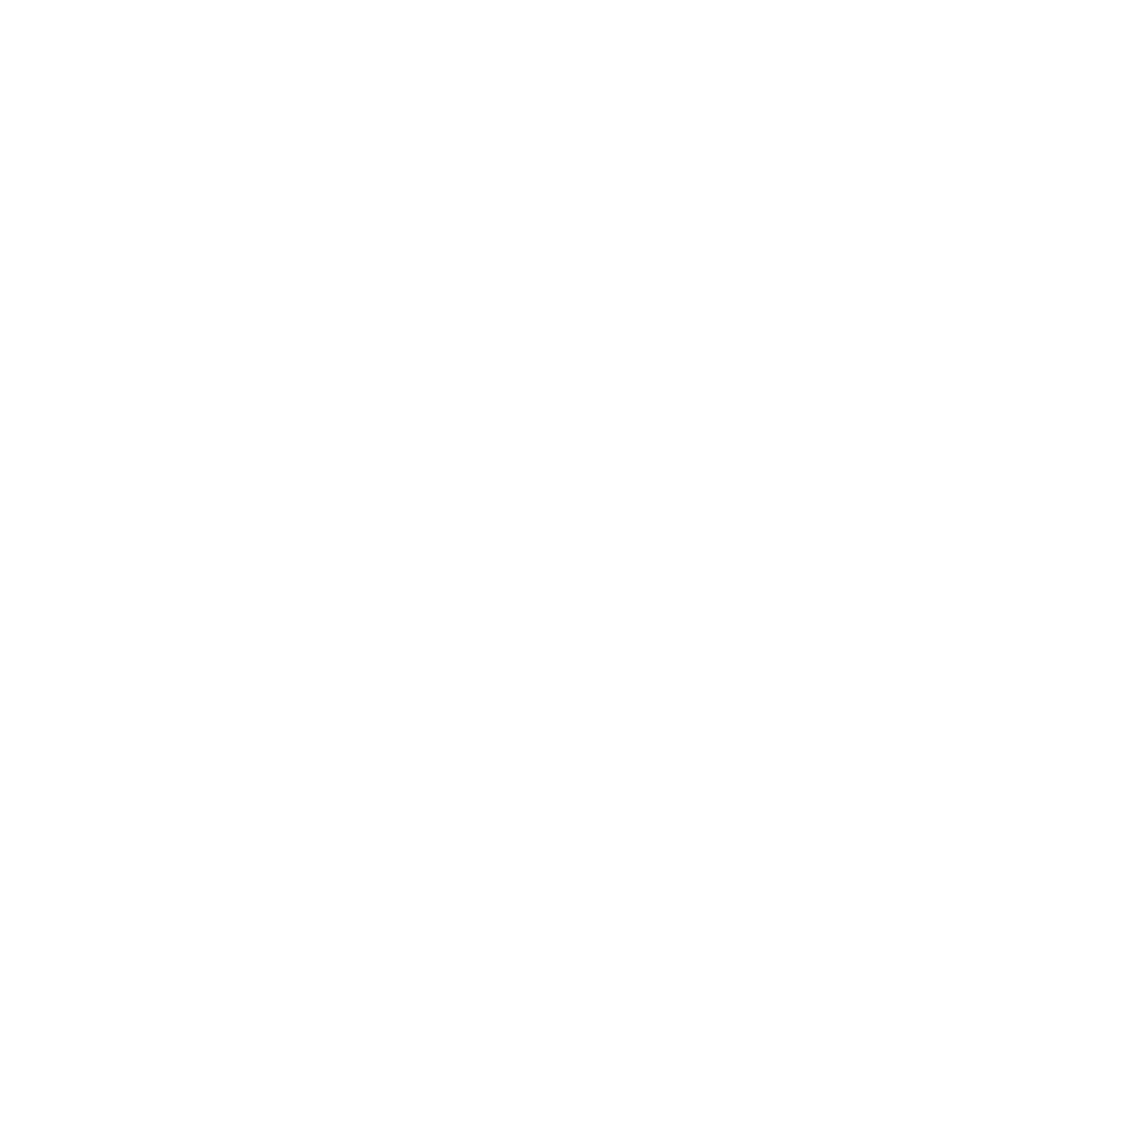 Content Writing Services Icon for the Best Web Design in Nashville TN, Horton Group who also provides Nashville SEO, Inbound Marketing and Web Support.